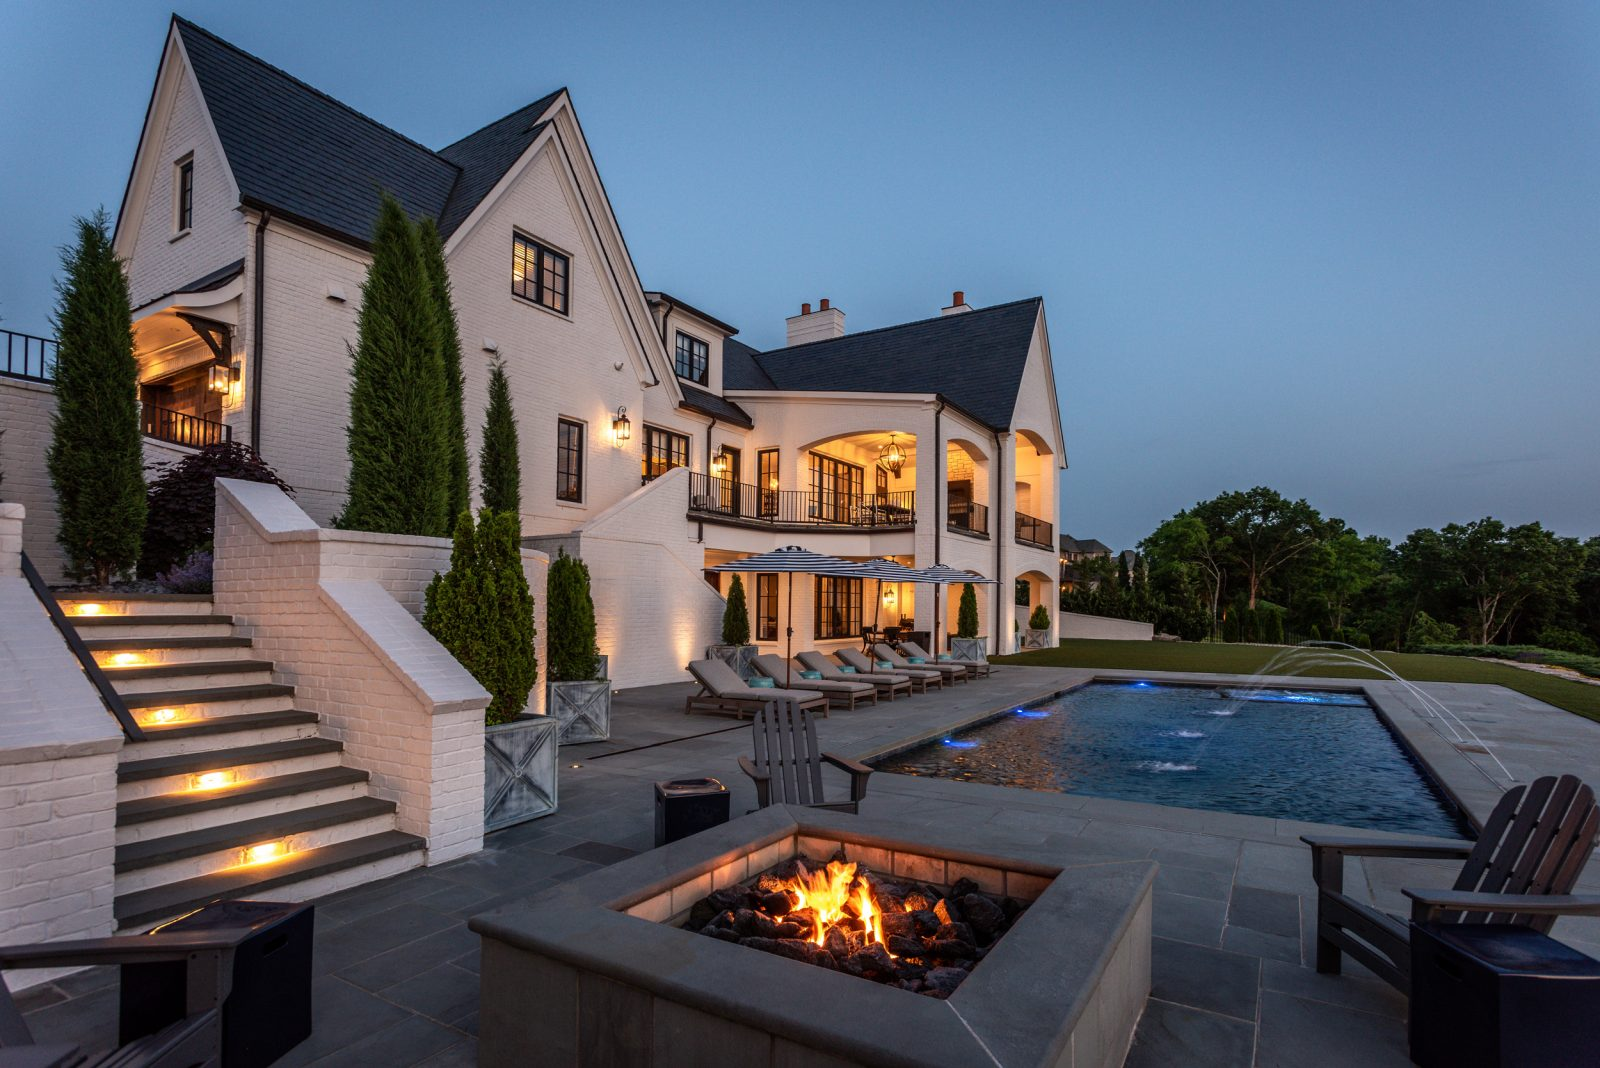 Fire pit and pool at dusk in Franklin, TN